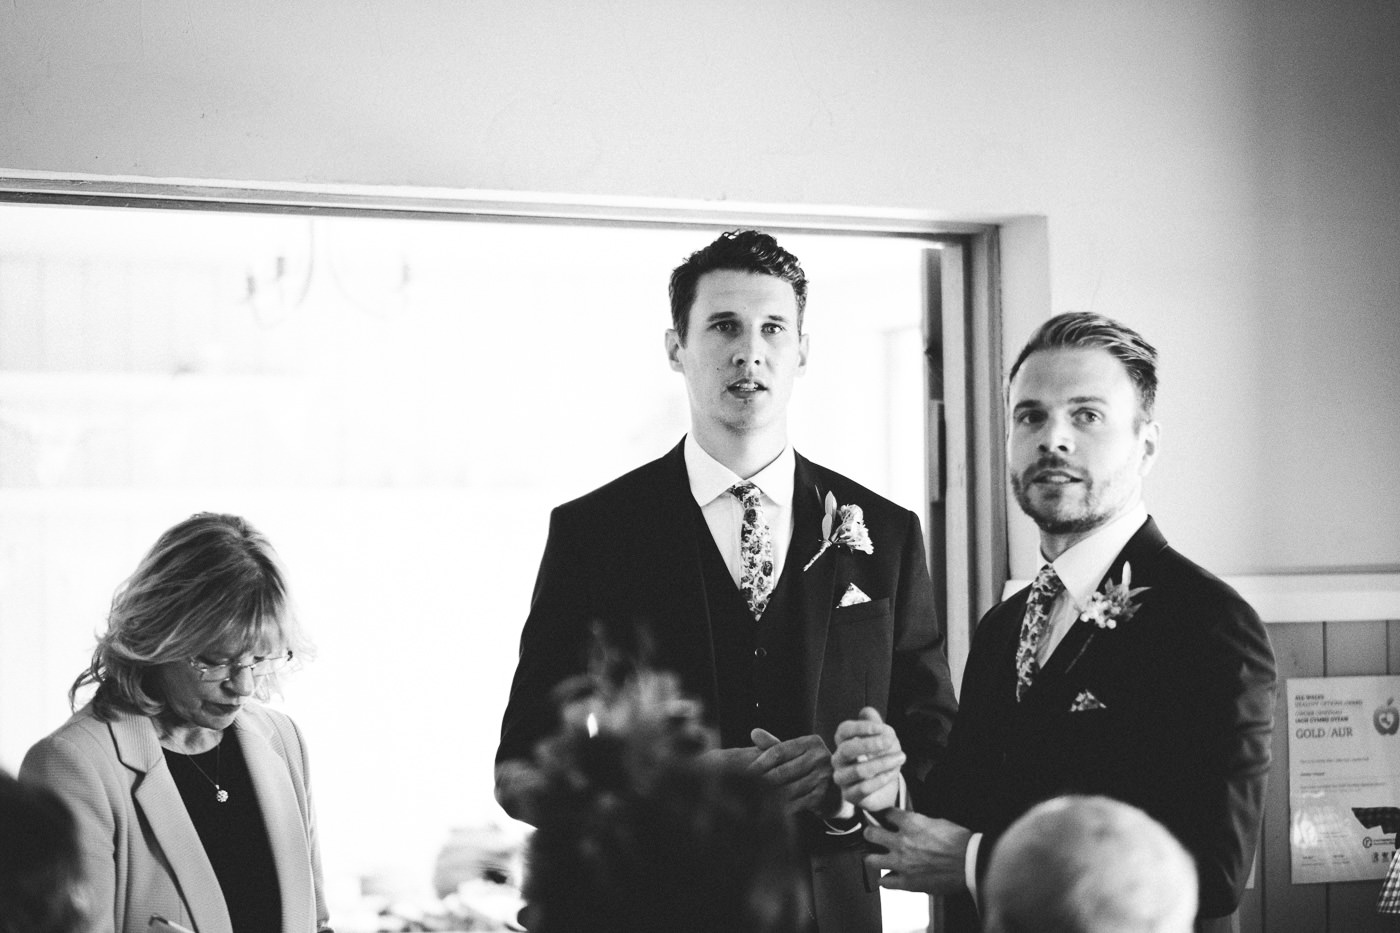 COWBRIDGE GLYNDWR VINEYARD WEDDING PHOTOGRAPHY CARDIFF SOUTH WALES 018